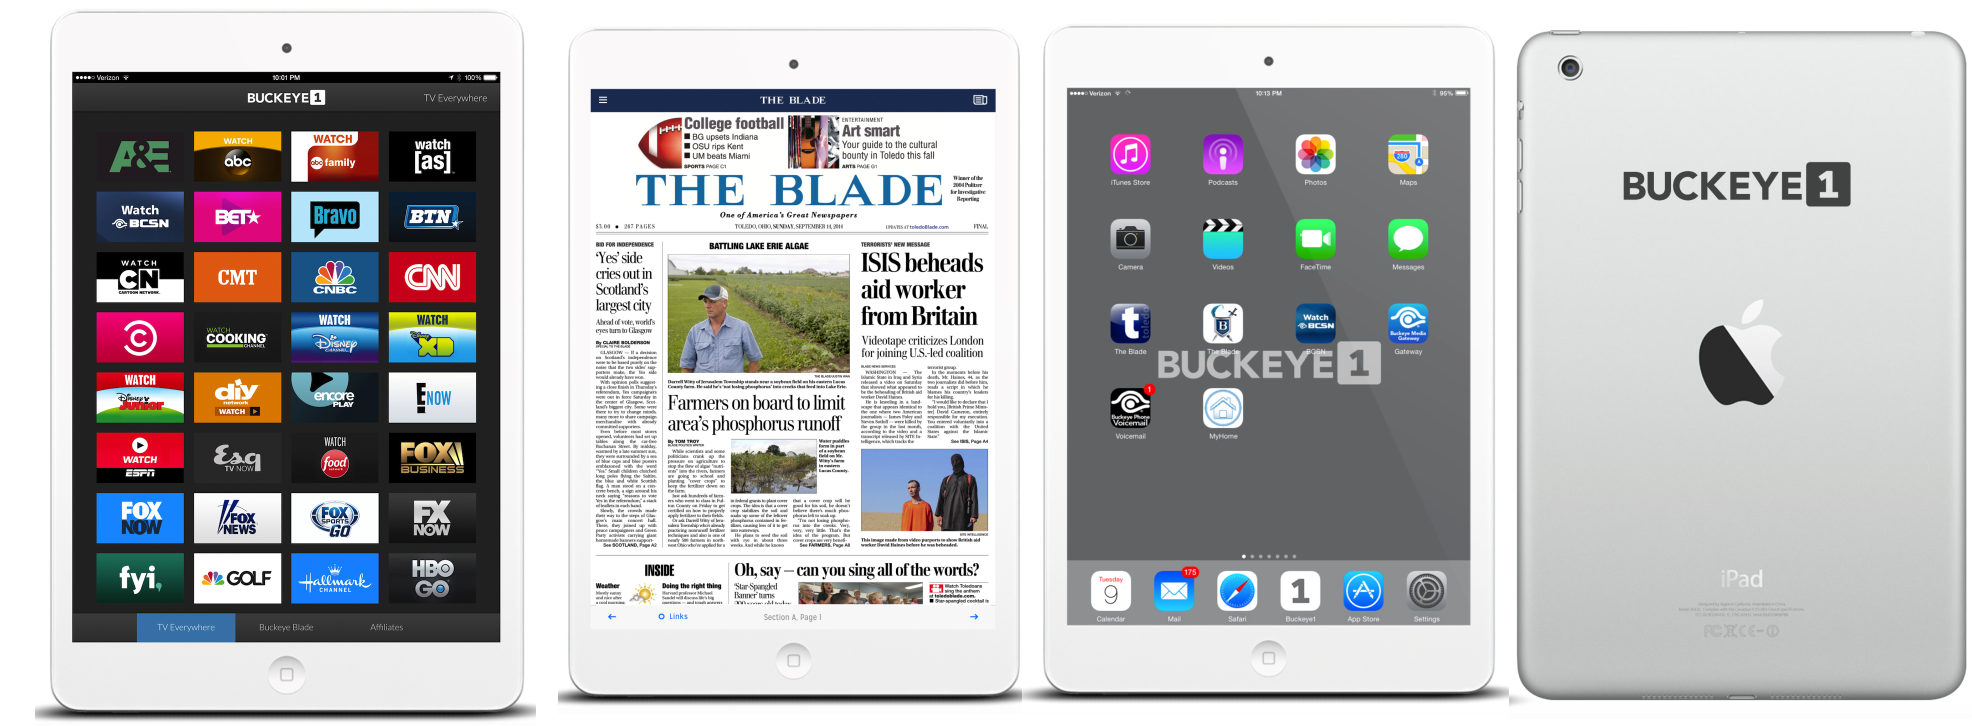 The Future of the Tablet is on Display in Ohio